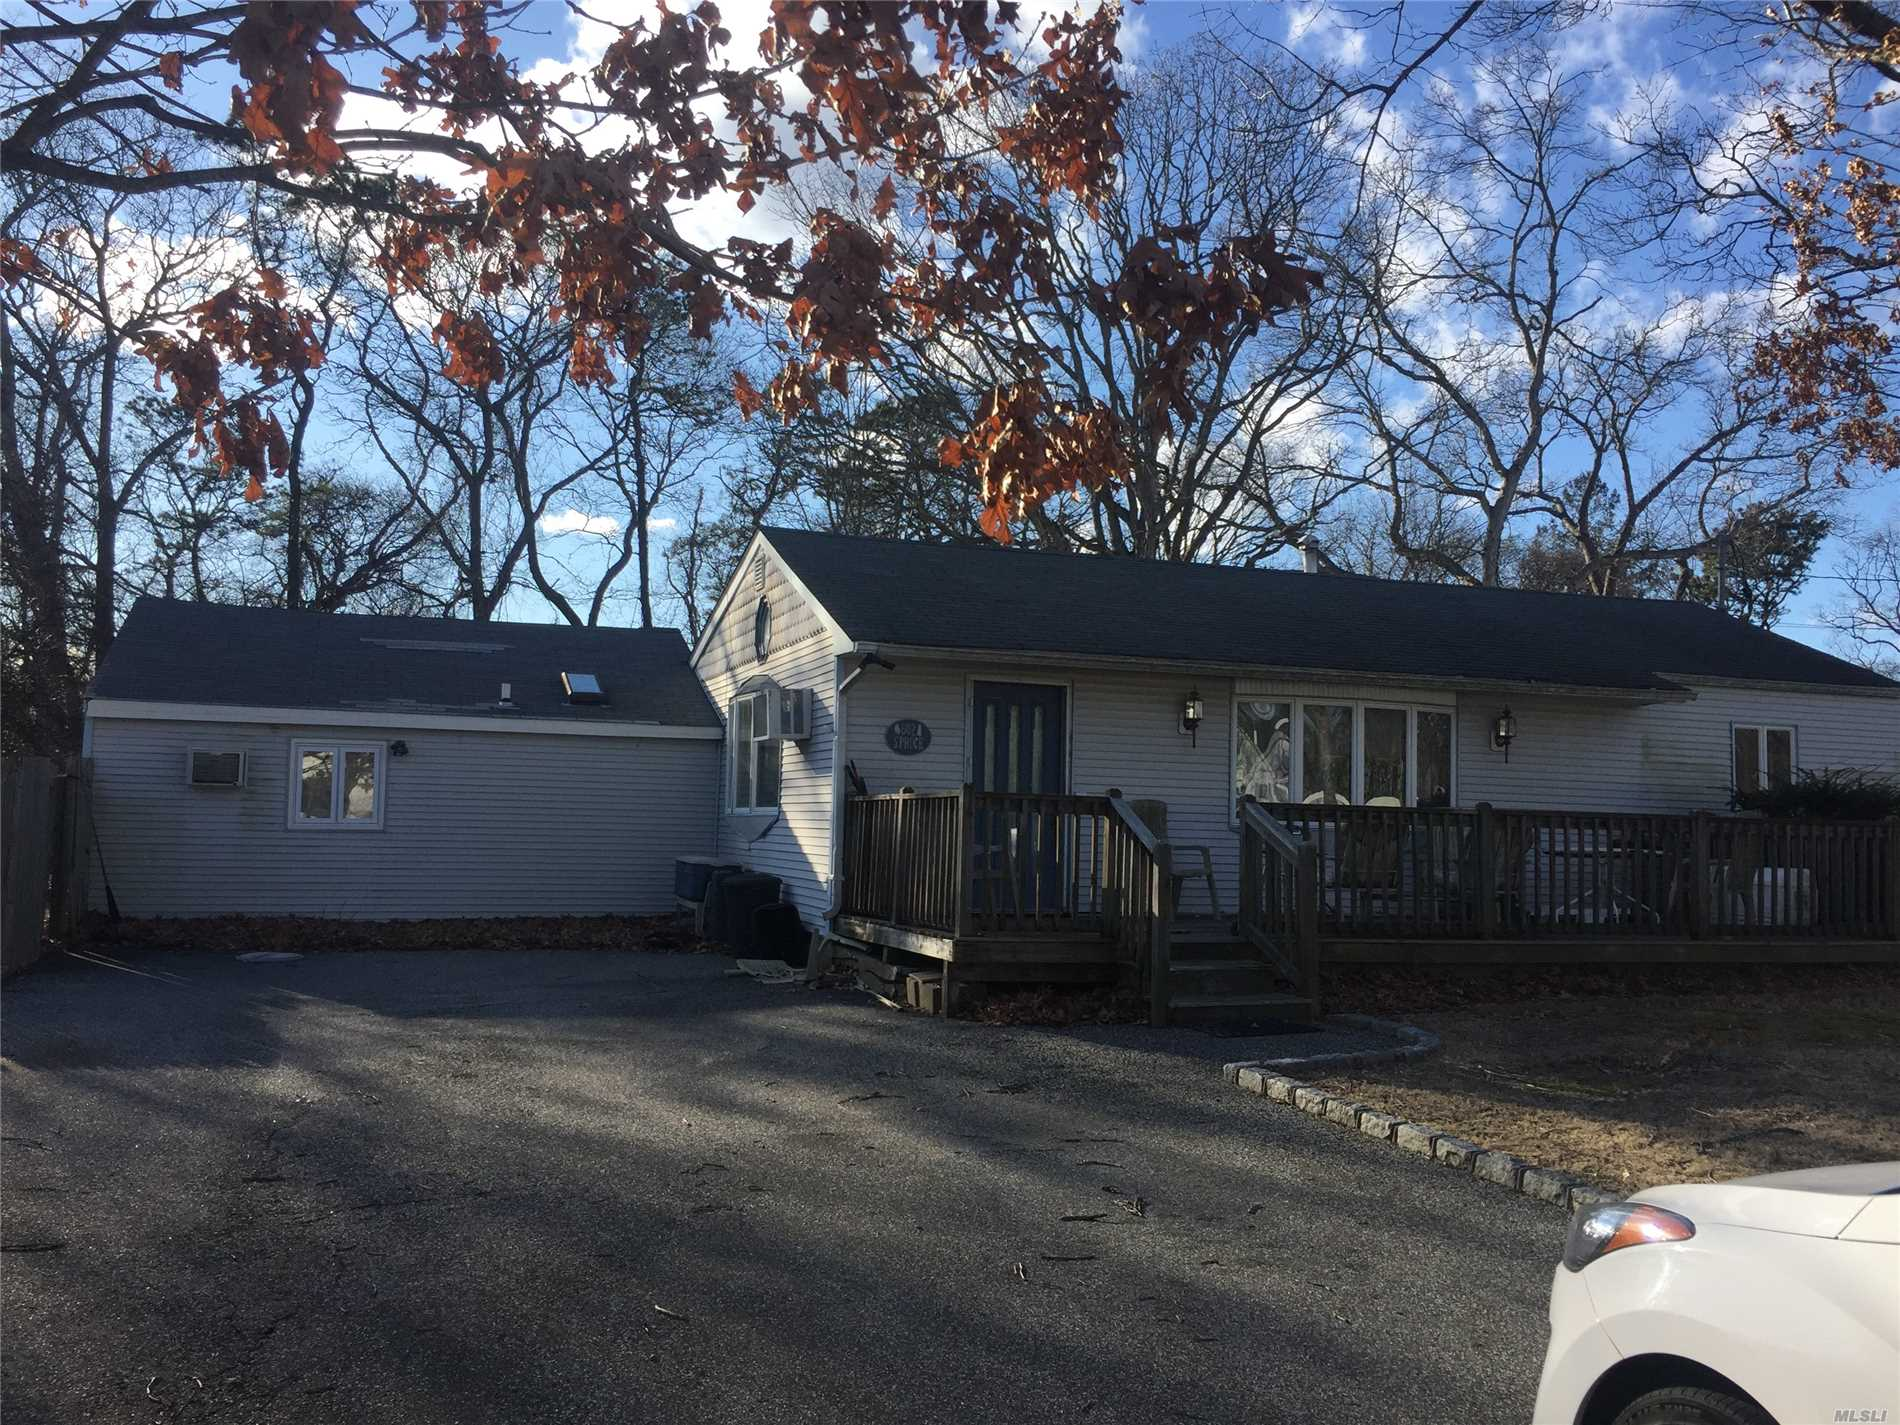 602 Spruce Ave - Sayville, New York